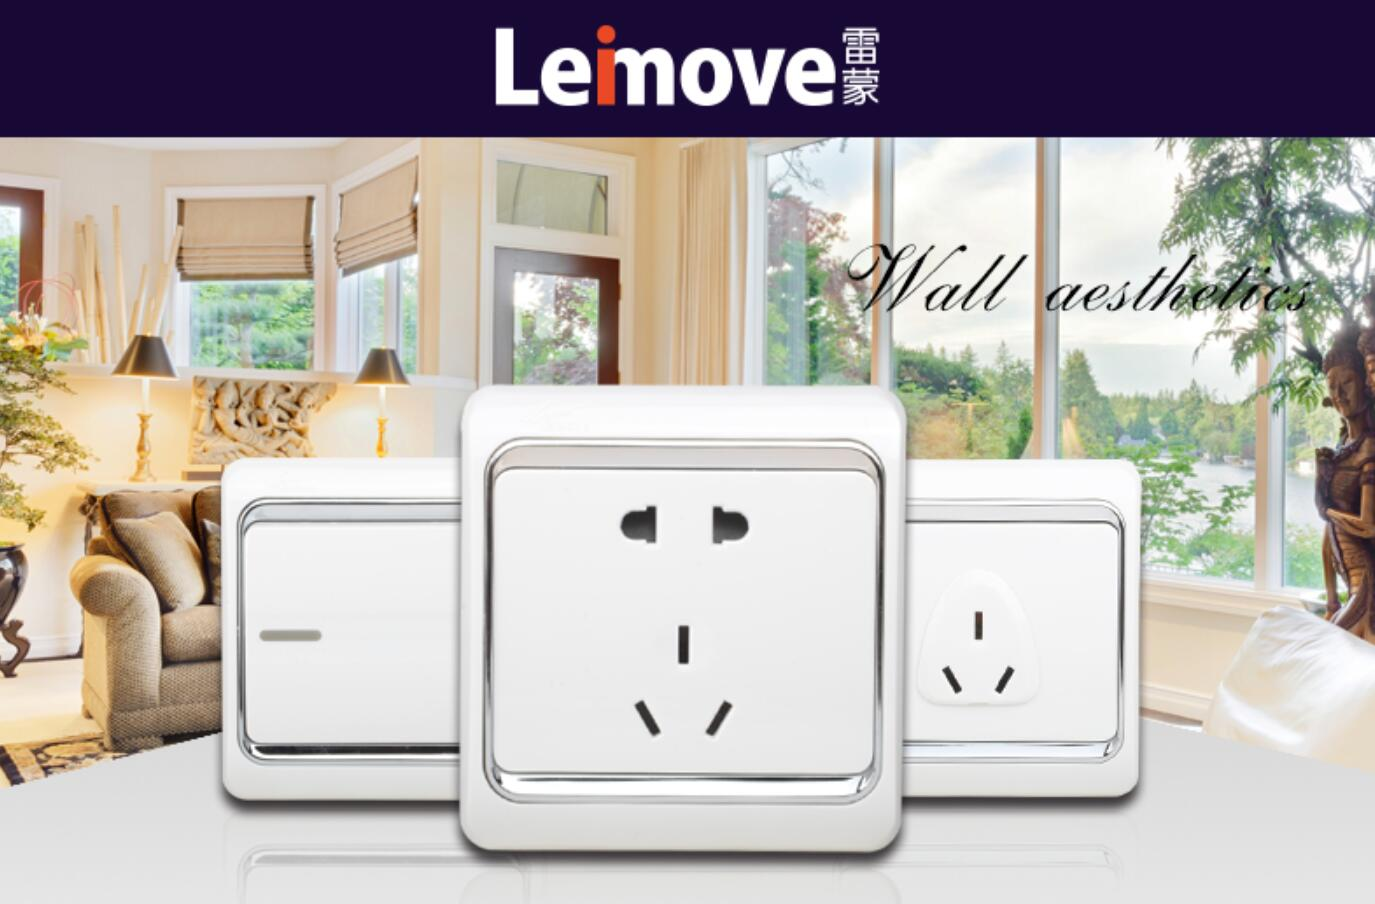 Leimove-Double Switch On Four Stilts Board Lm4-2a - Leimove Lighting